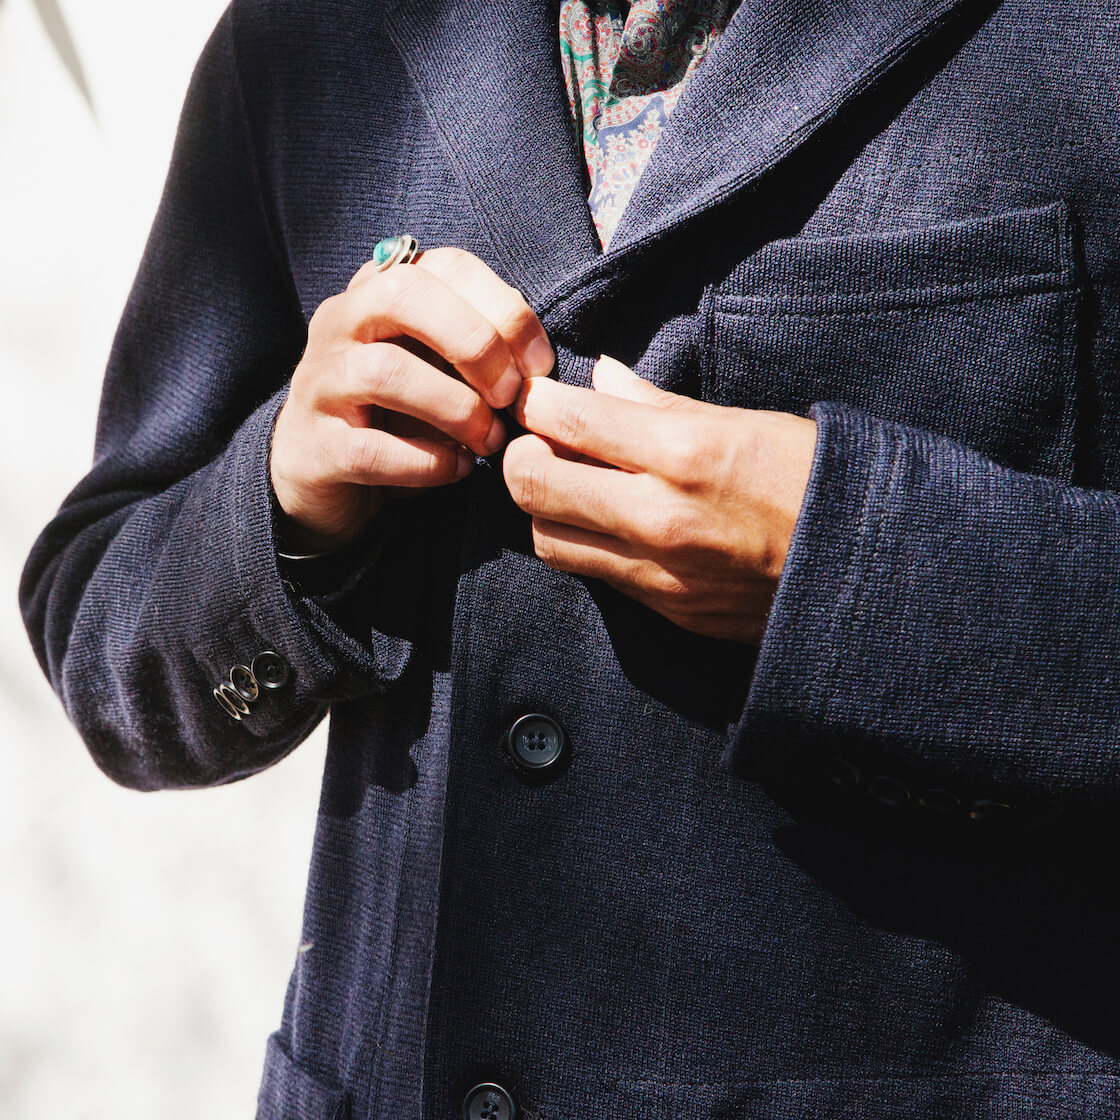 Fall Suiting - Engineered Garments on body